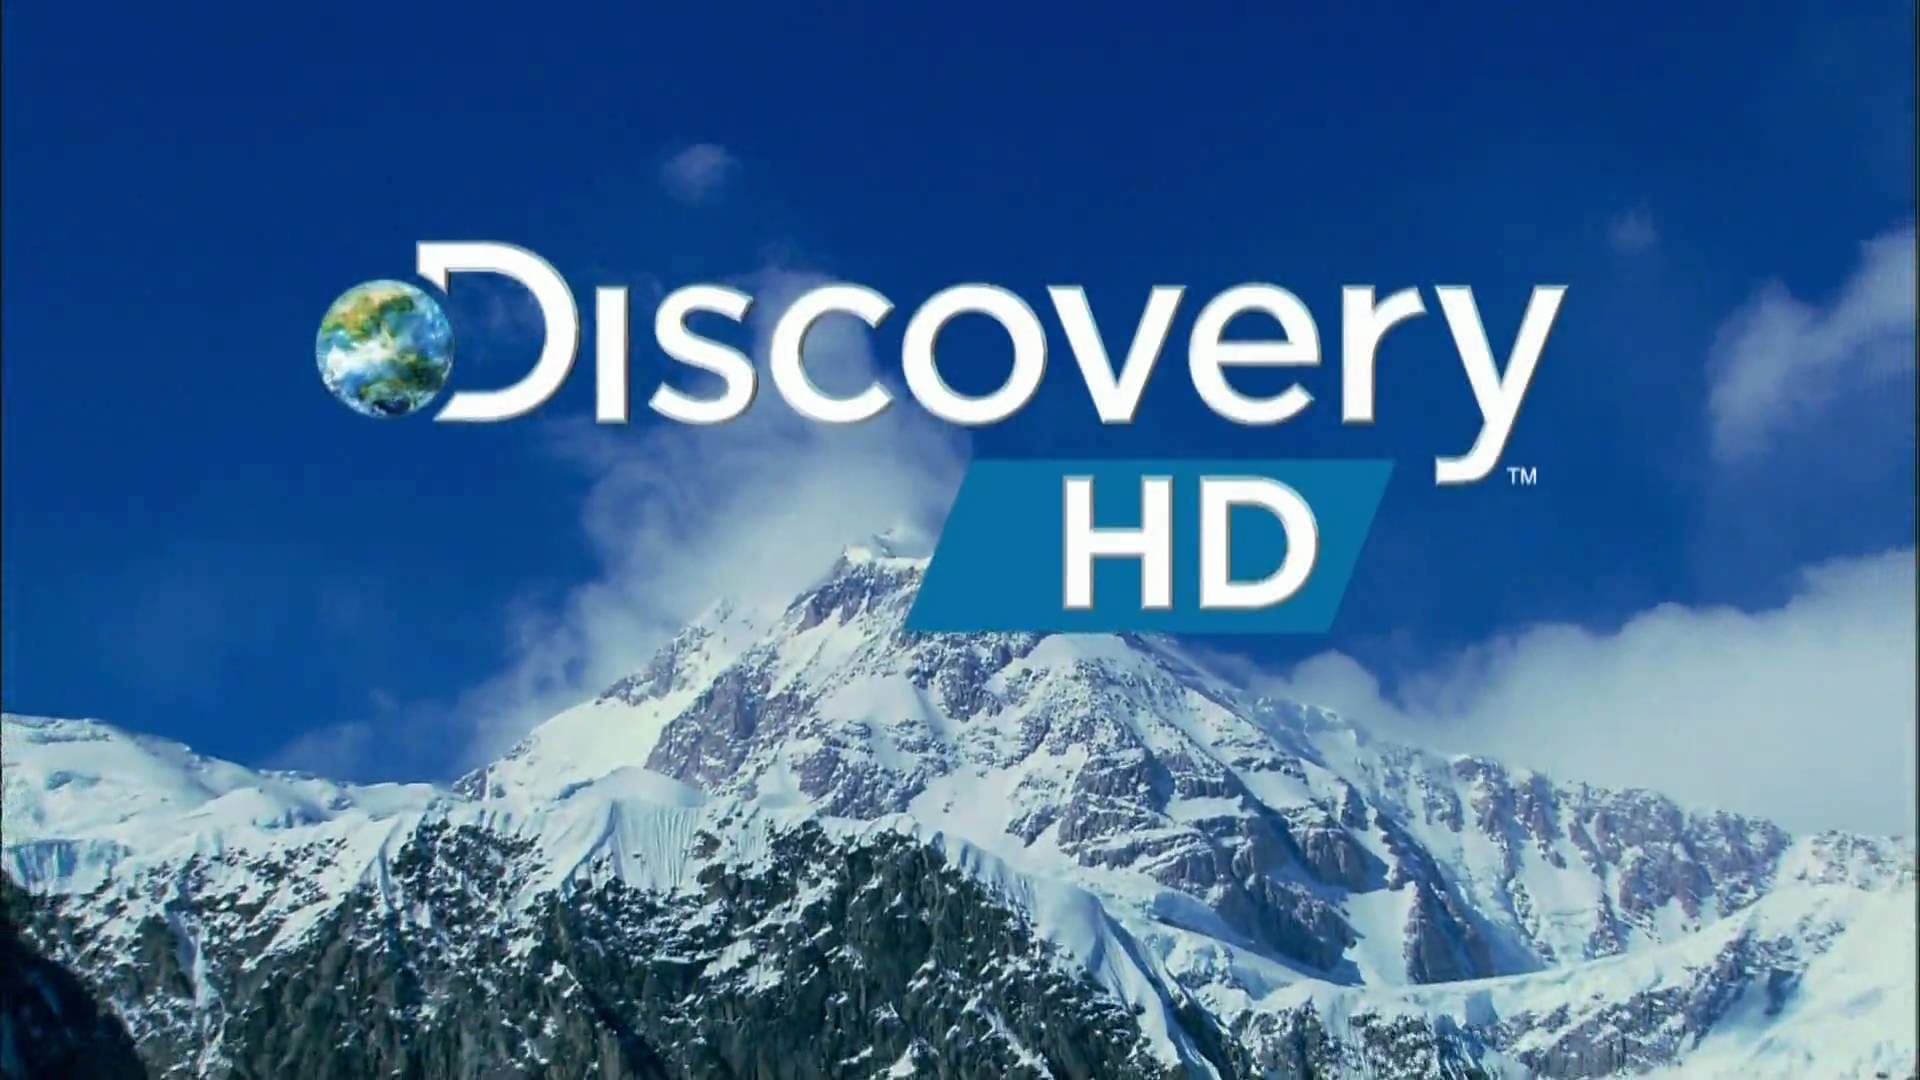 76+] Discovery Channel Wallpapers on WallpaperSafari